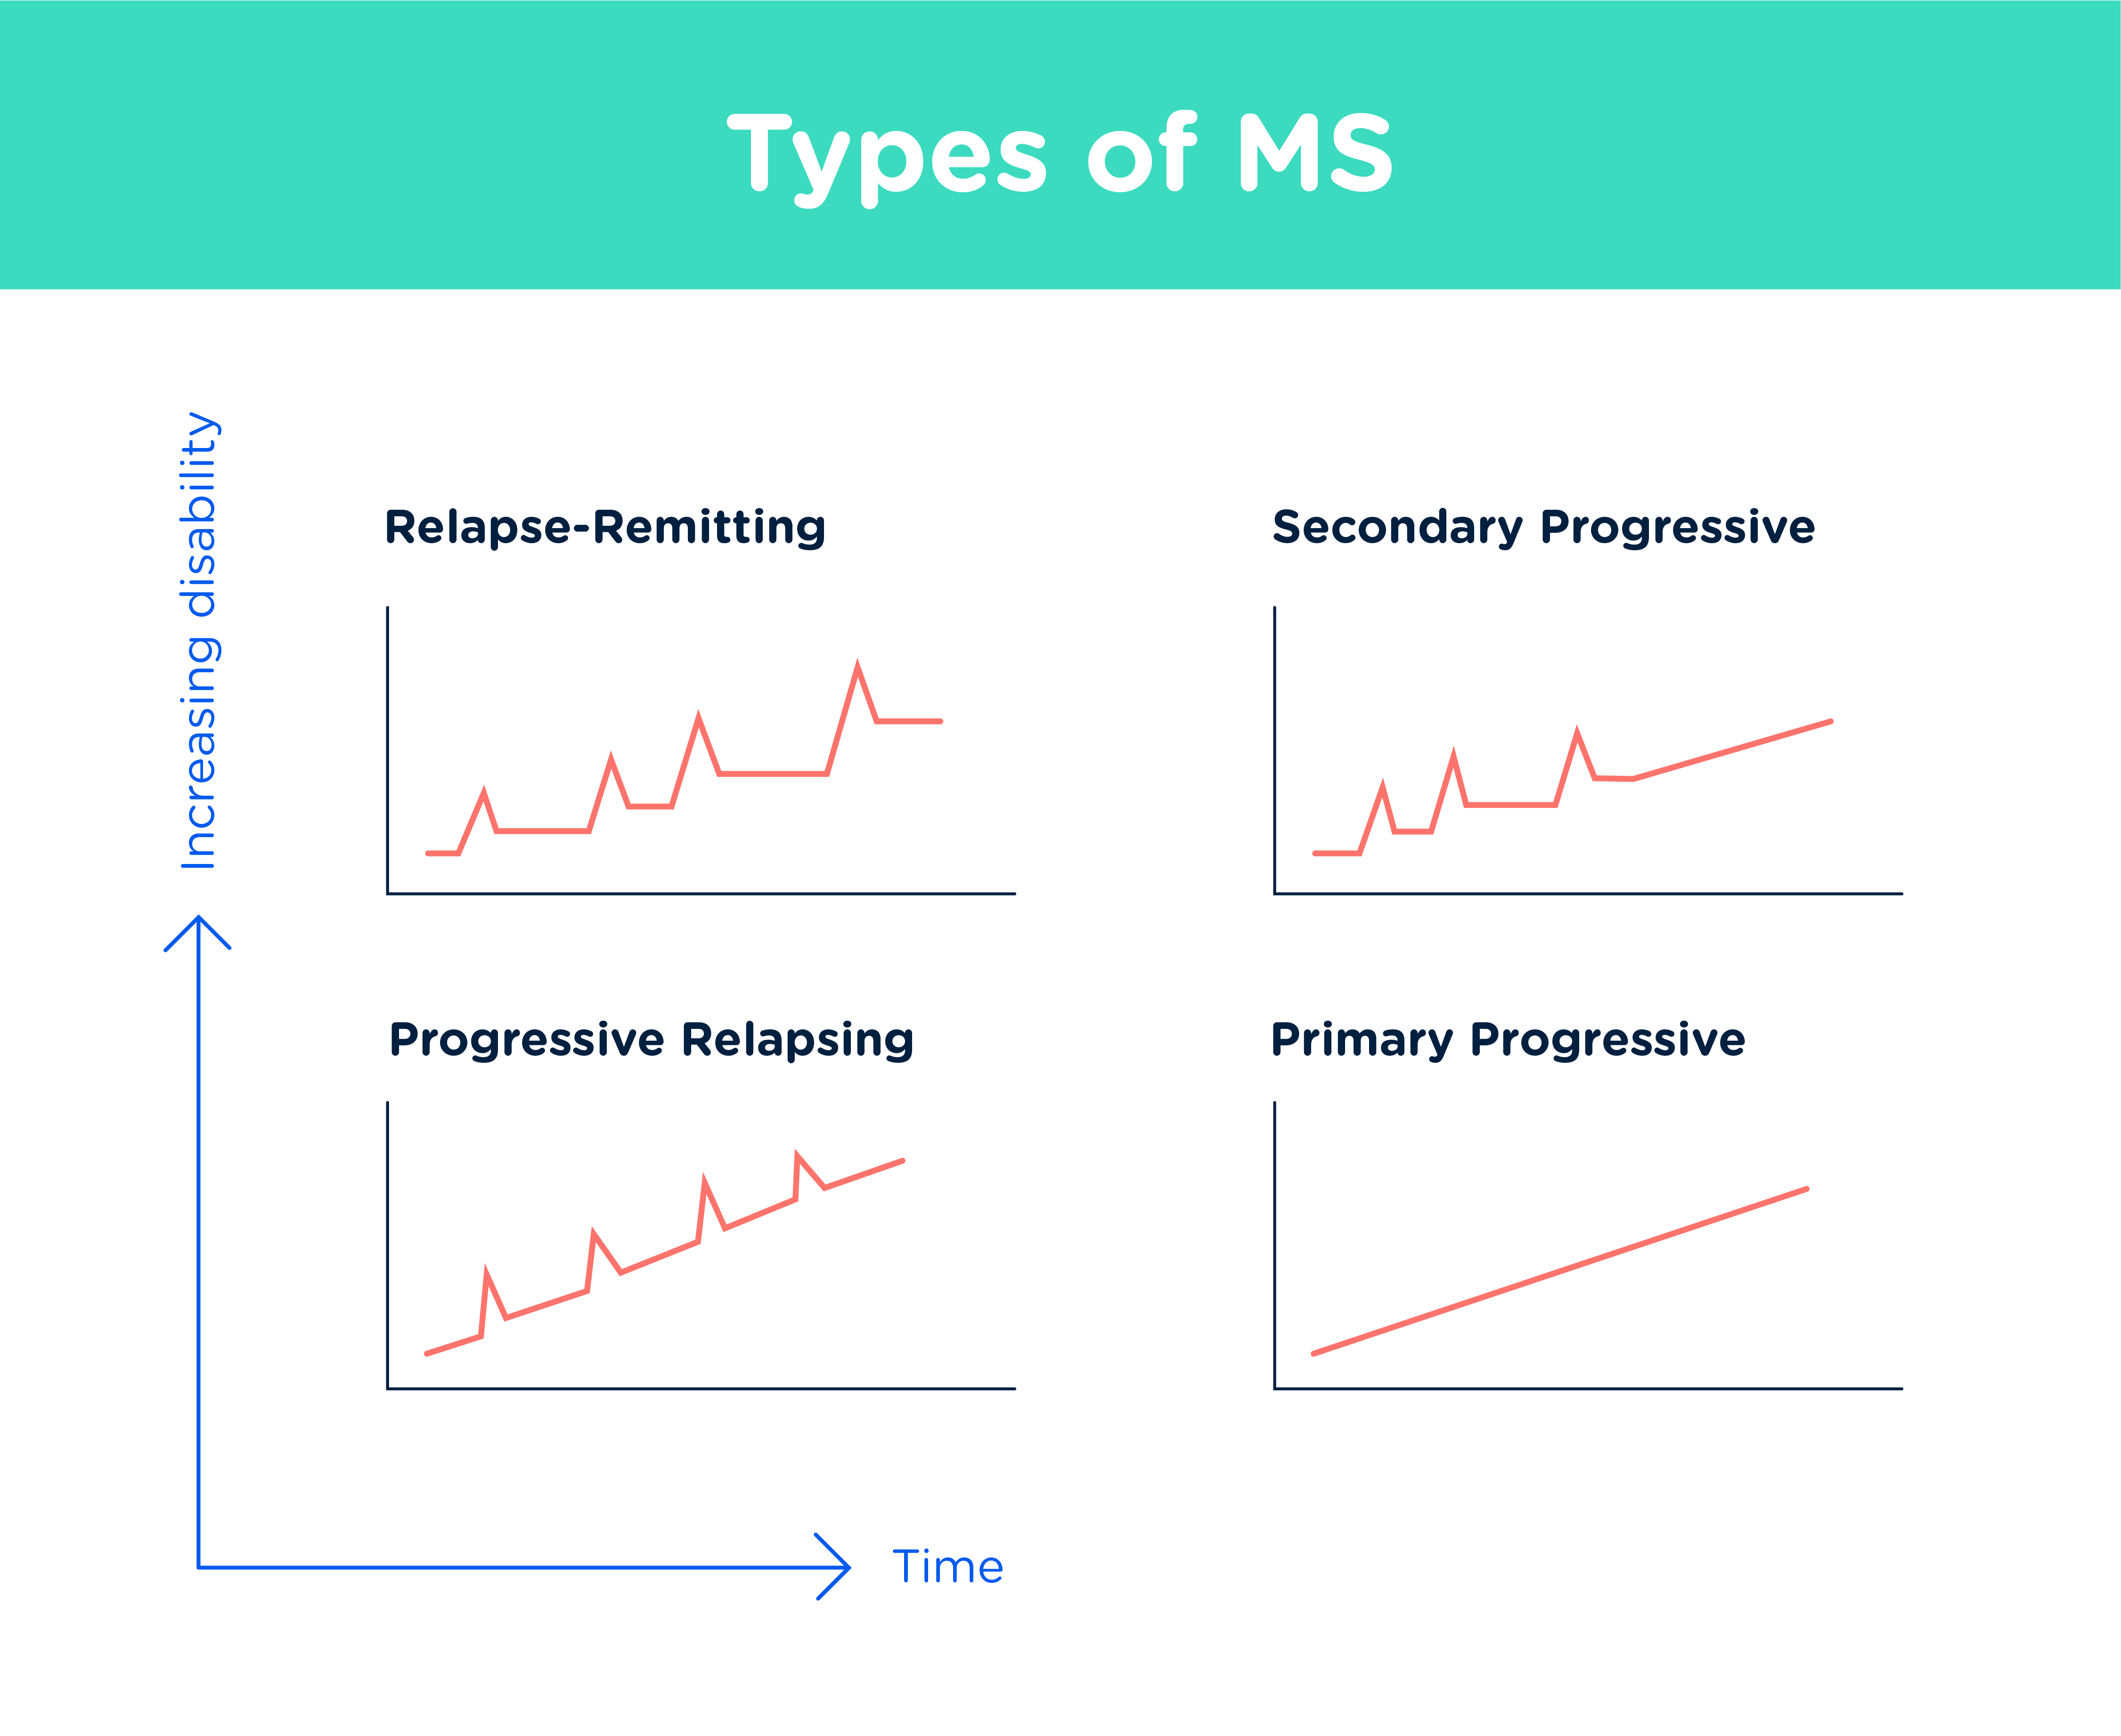 types of MS chart